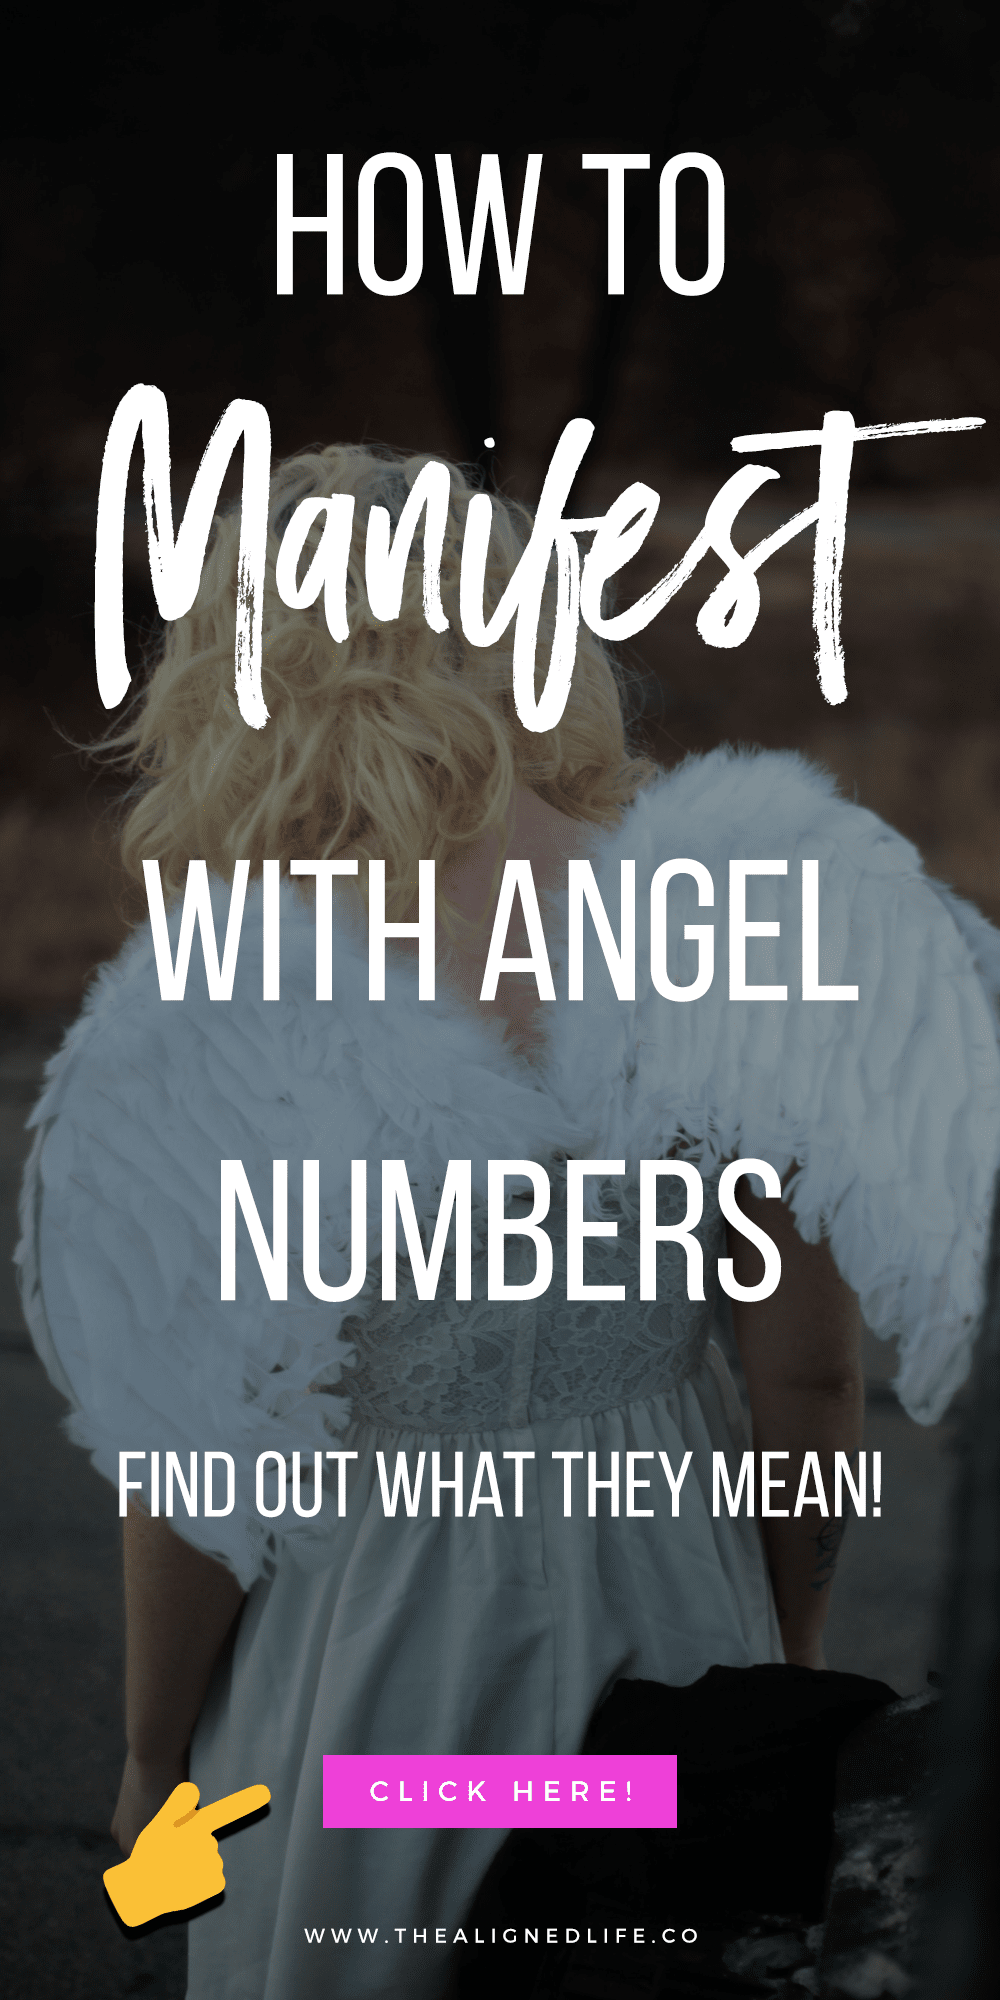 white background with text that reads How To Manifest With Angel Numbers Like 1111: What Do They Mean?